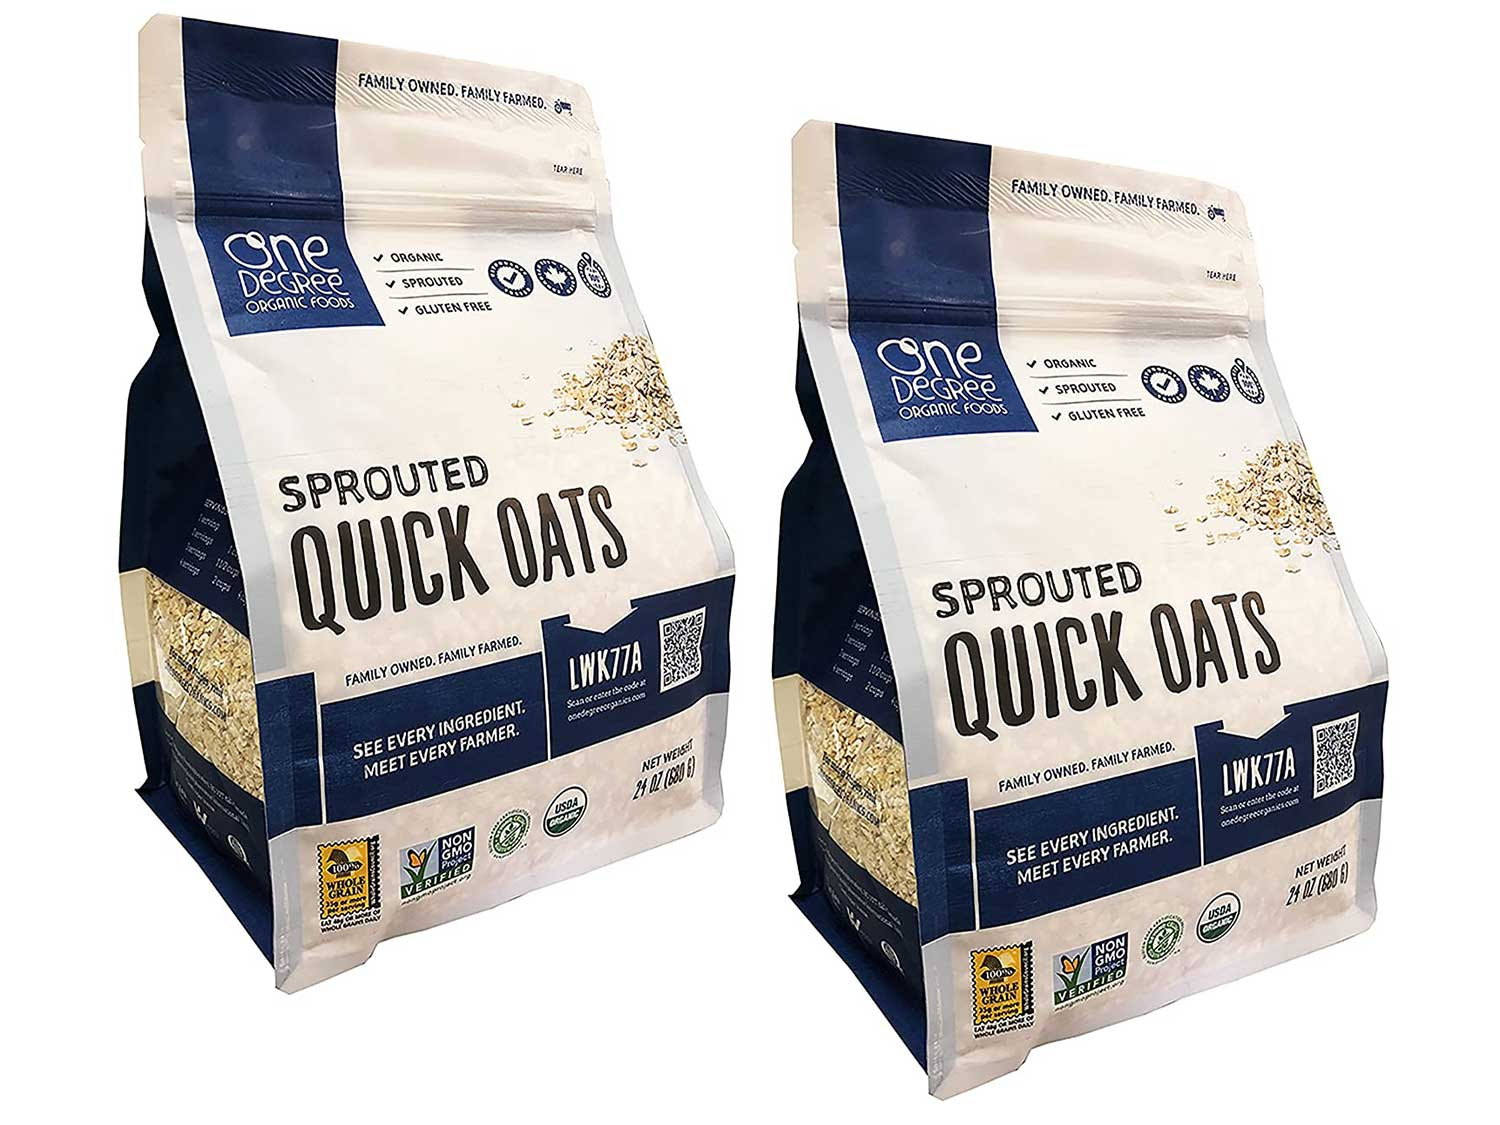 One Degree Organic Sprouted Quick Oats 24 Ounce Pack of 2 - Non-GMO and Organic Easy Oatmeal